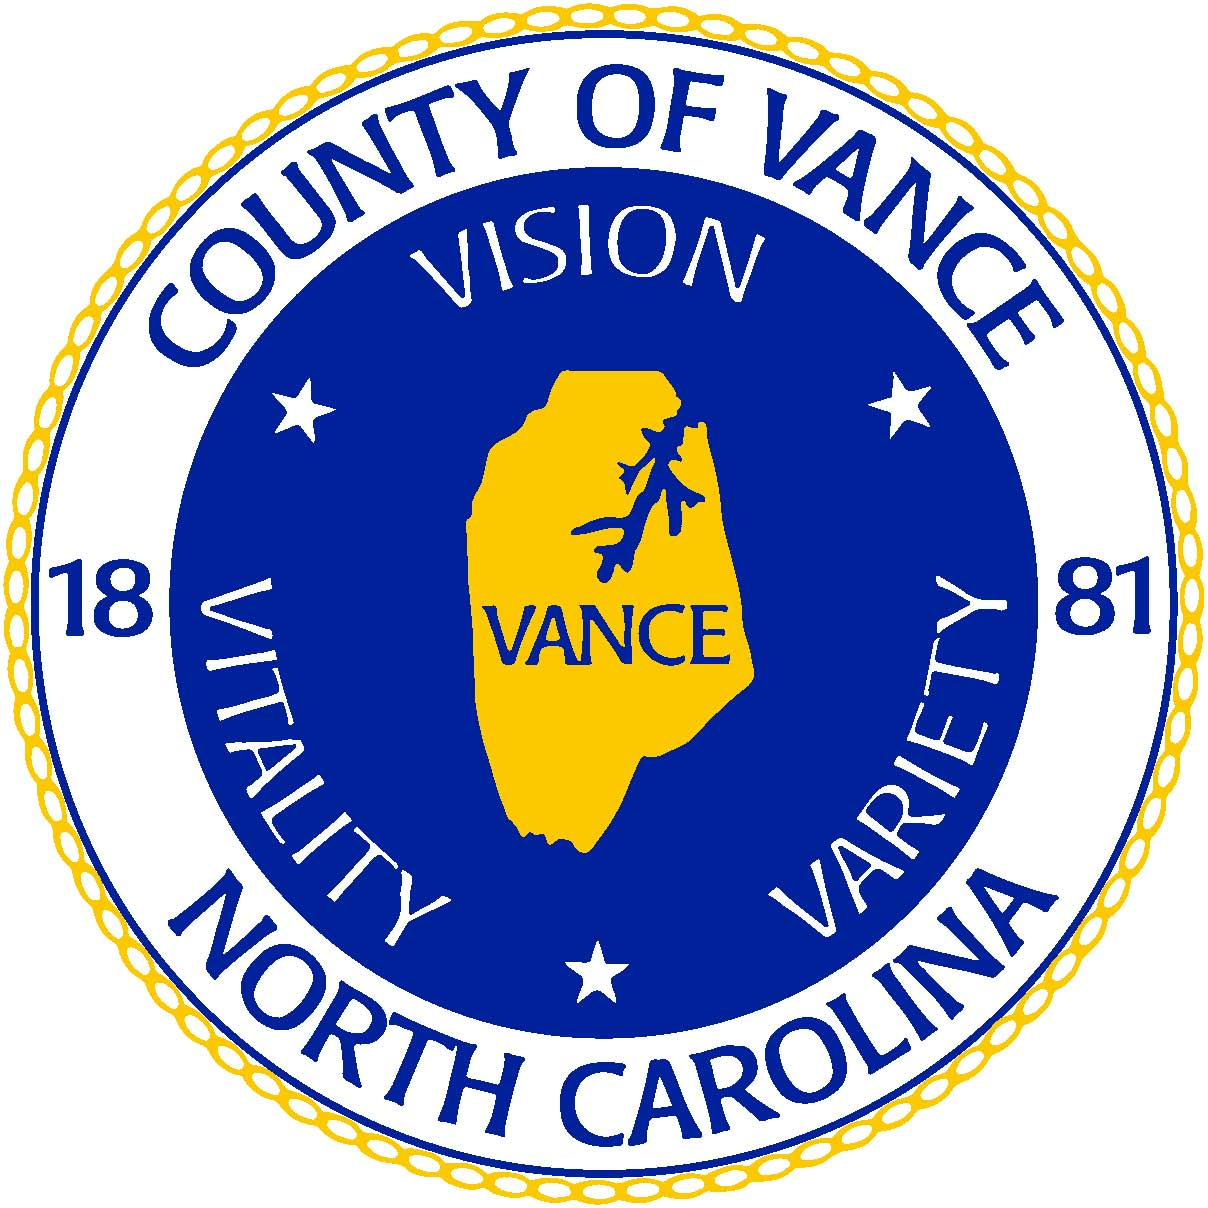 Not sure what it will cost to attend vancegranville community college? find a summary of tuition costs and